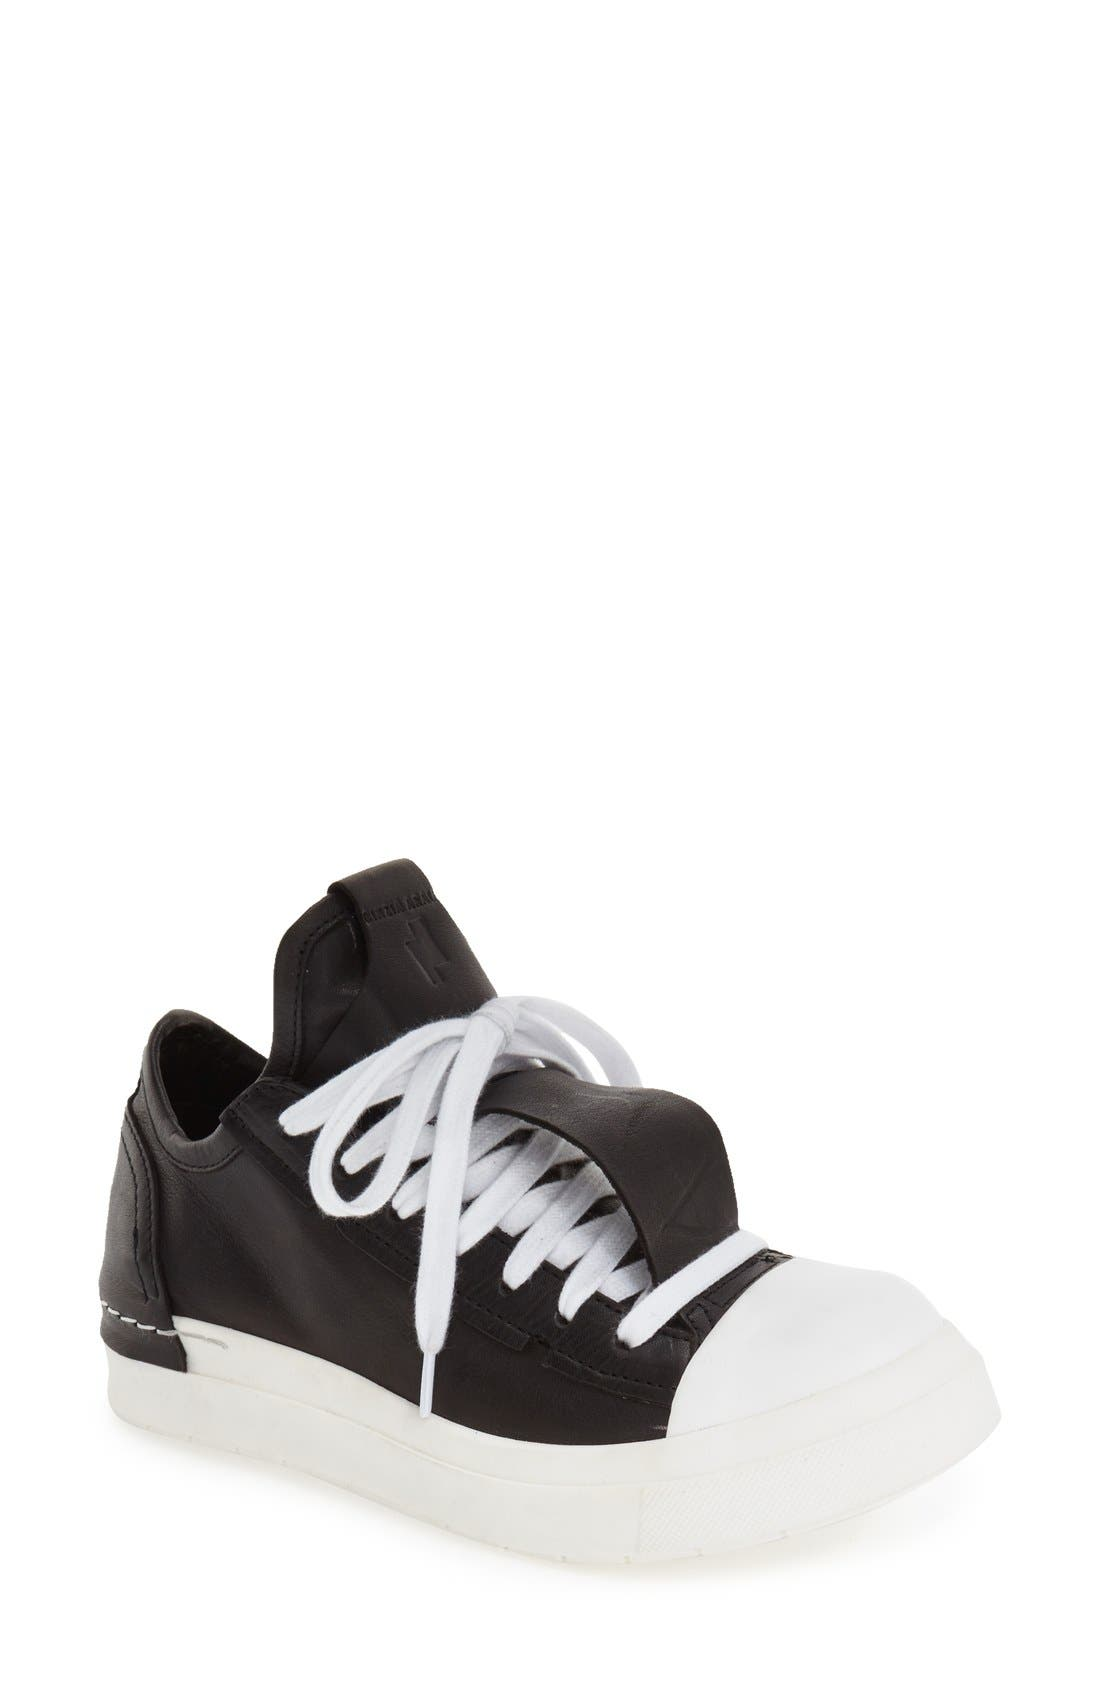 Main Image - CA by CINZIA ARAIA Lace-Up Leather Sneaker (Women)